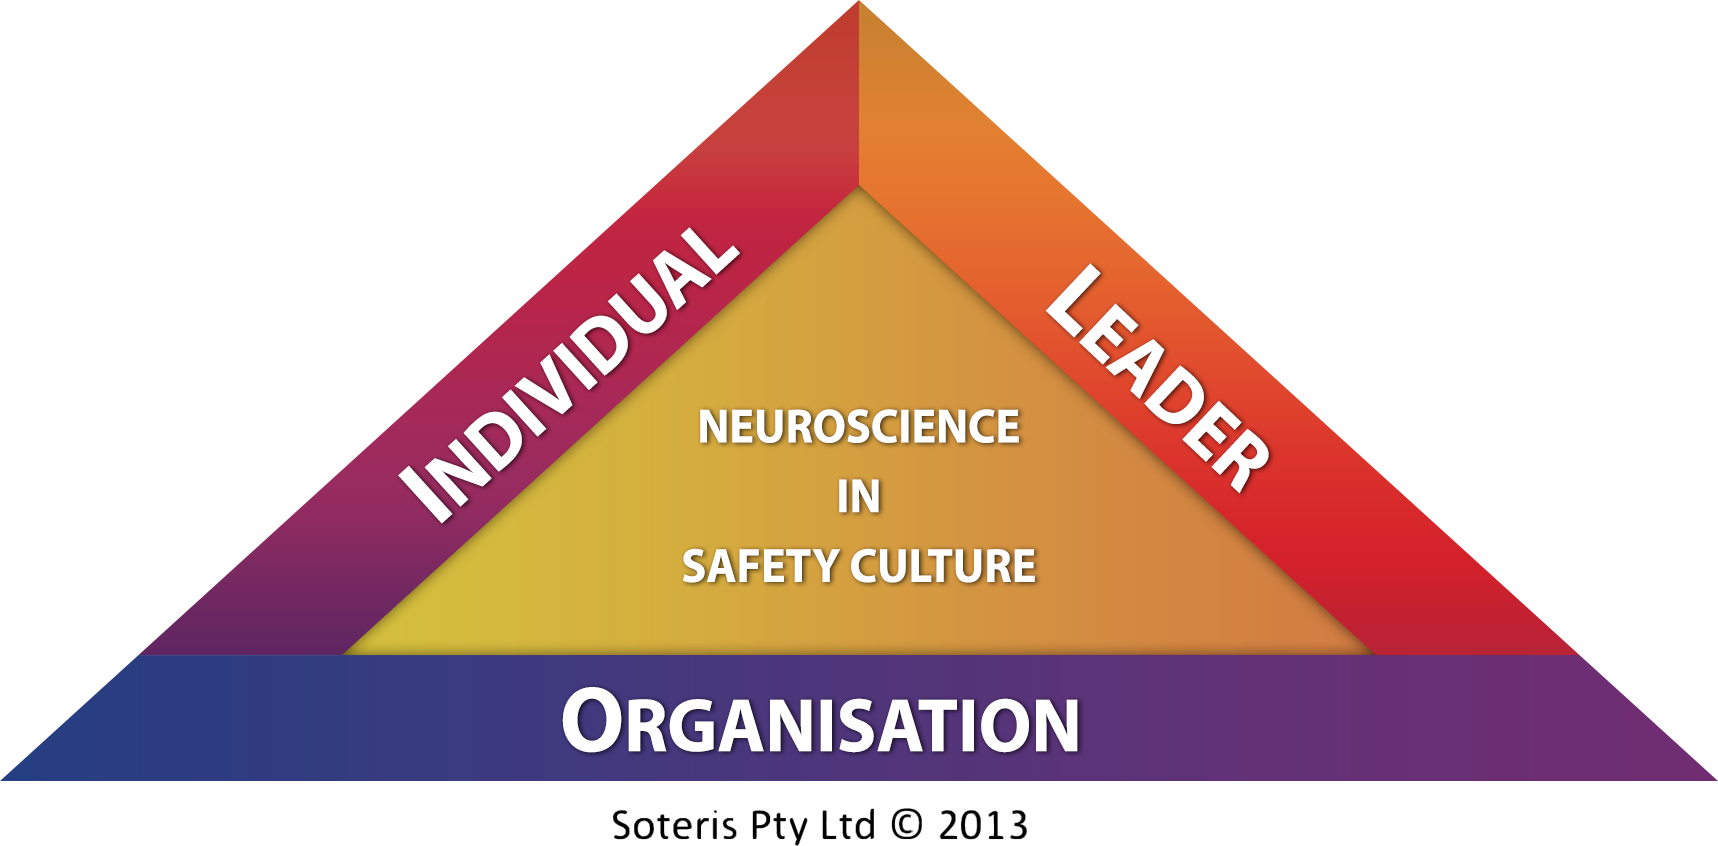 Neuroscience In Safety Culture